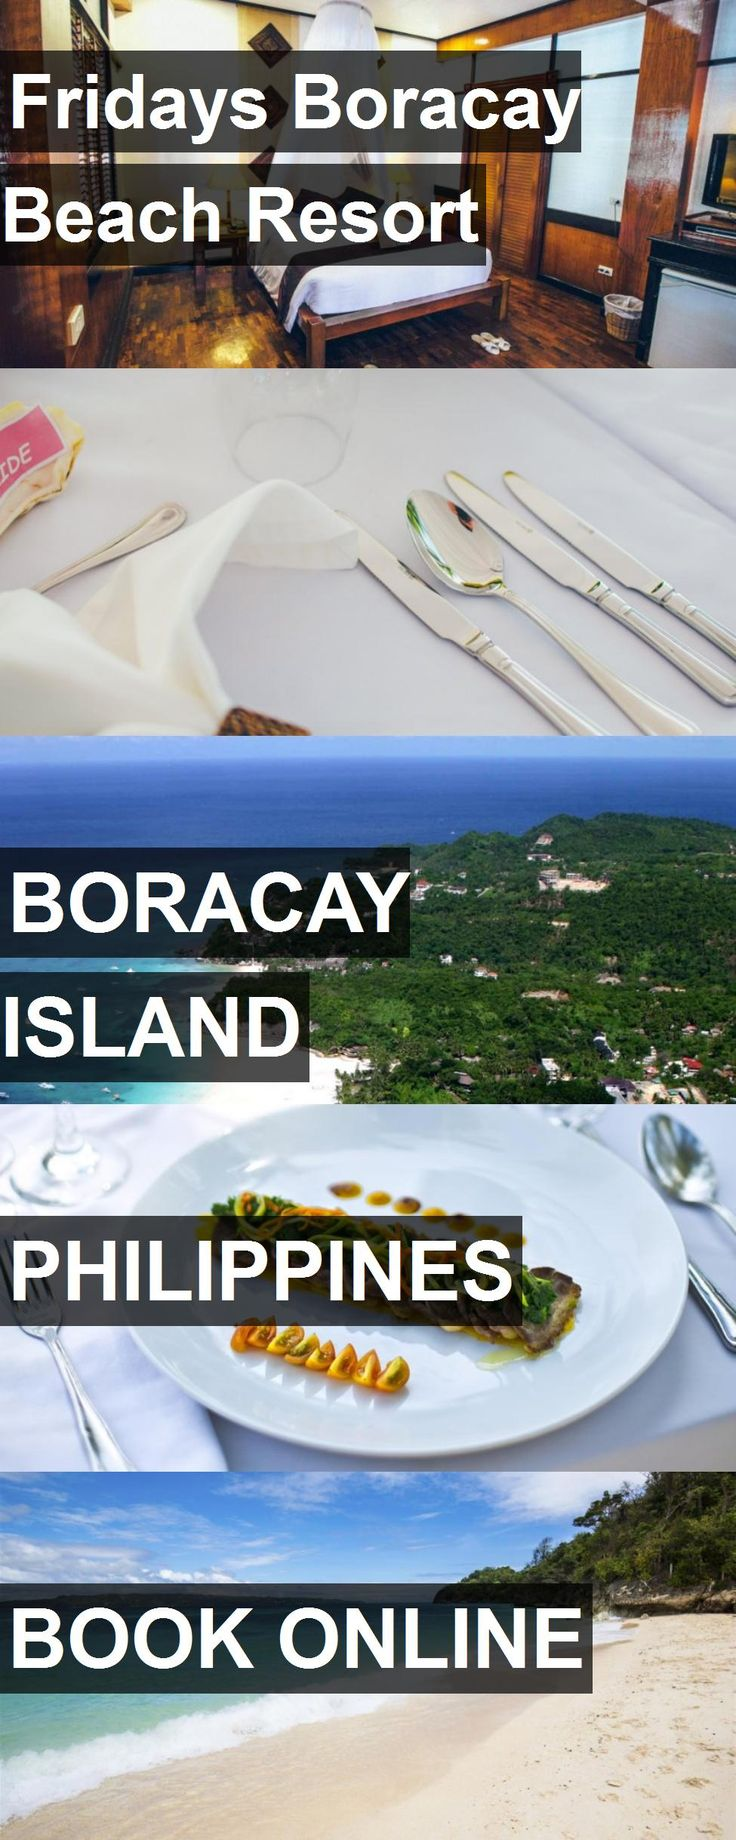 Hotel Fridays Boracay Beach Resort in Boracay Island, Philippines. For more information, photos, reviews and best prices please follow the link. #Philippines #BoracayIsland #travel #vacation #hotel